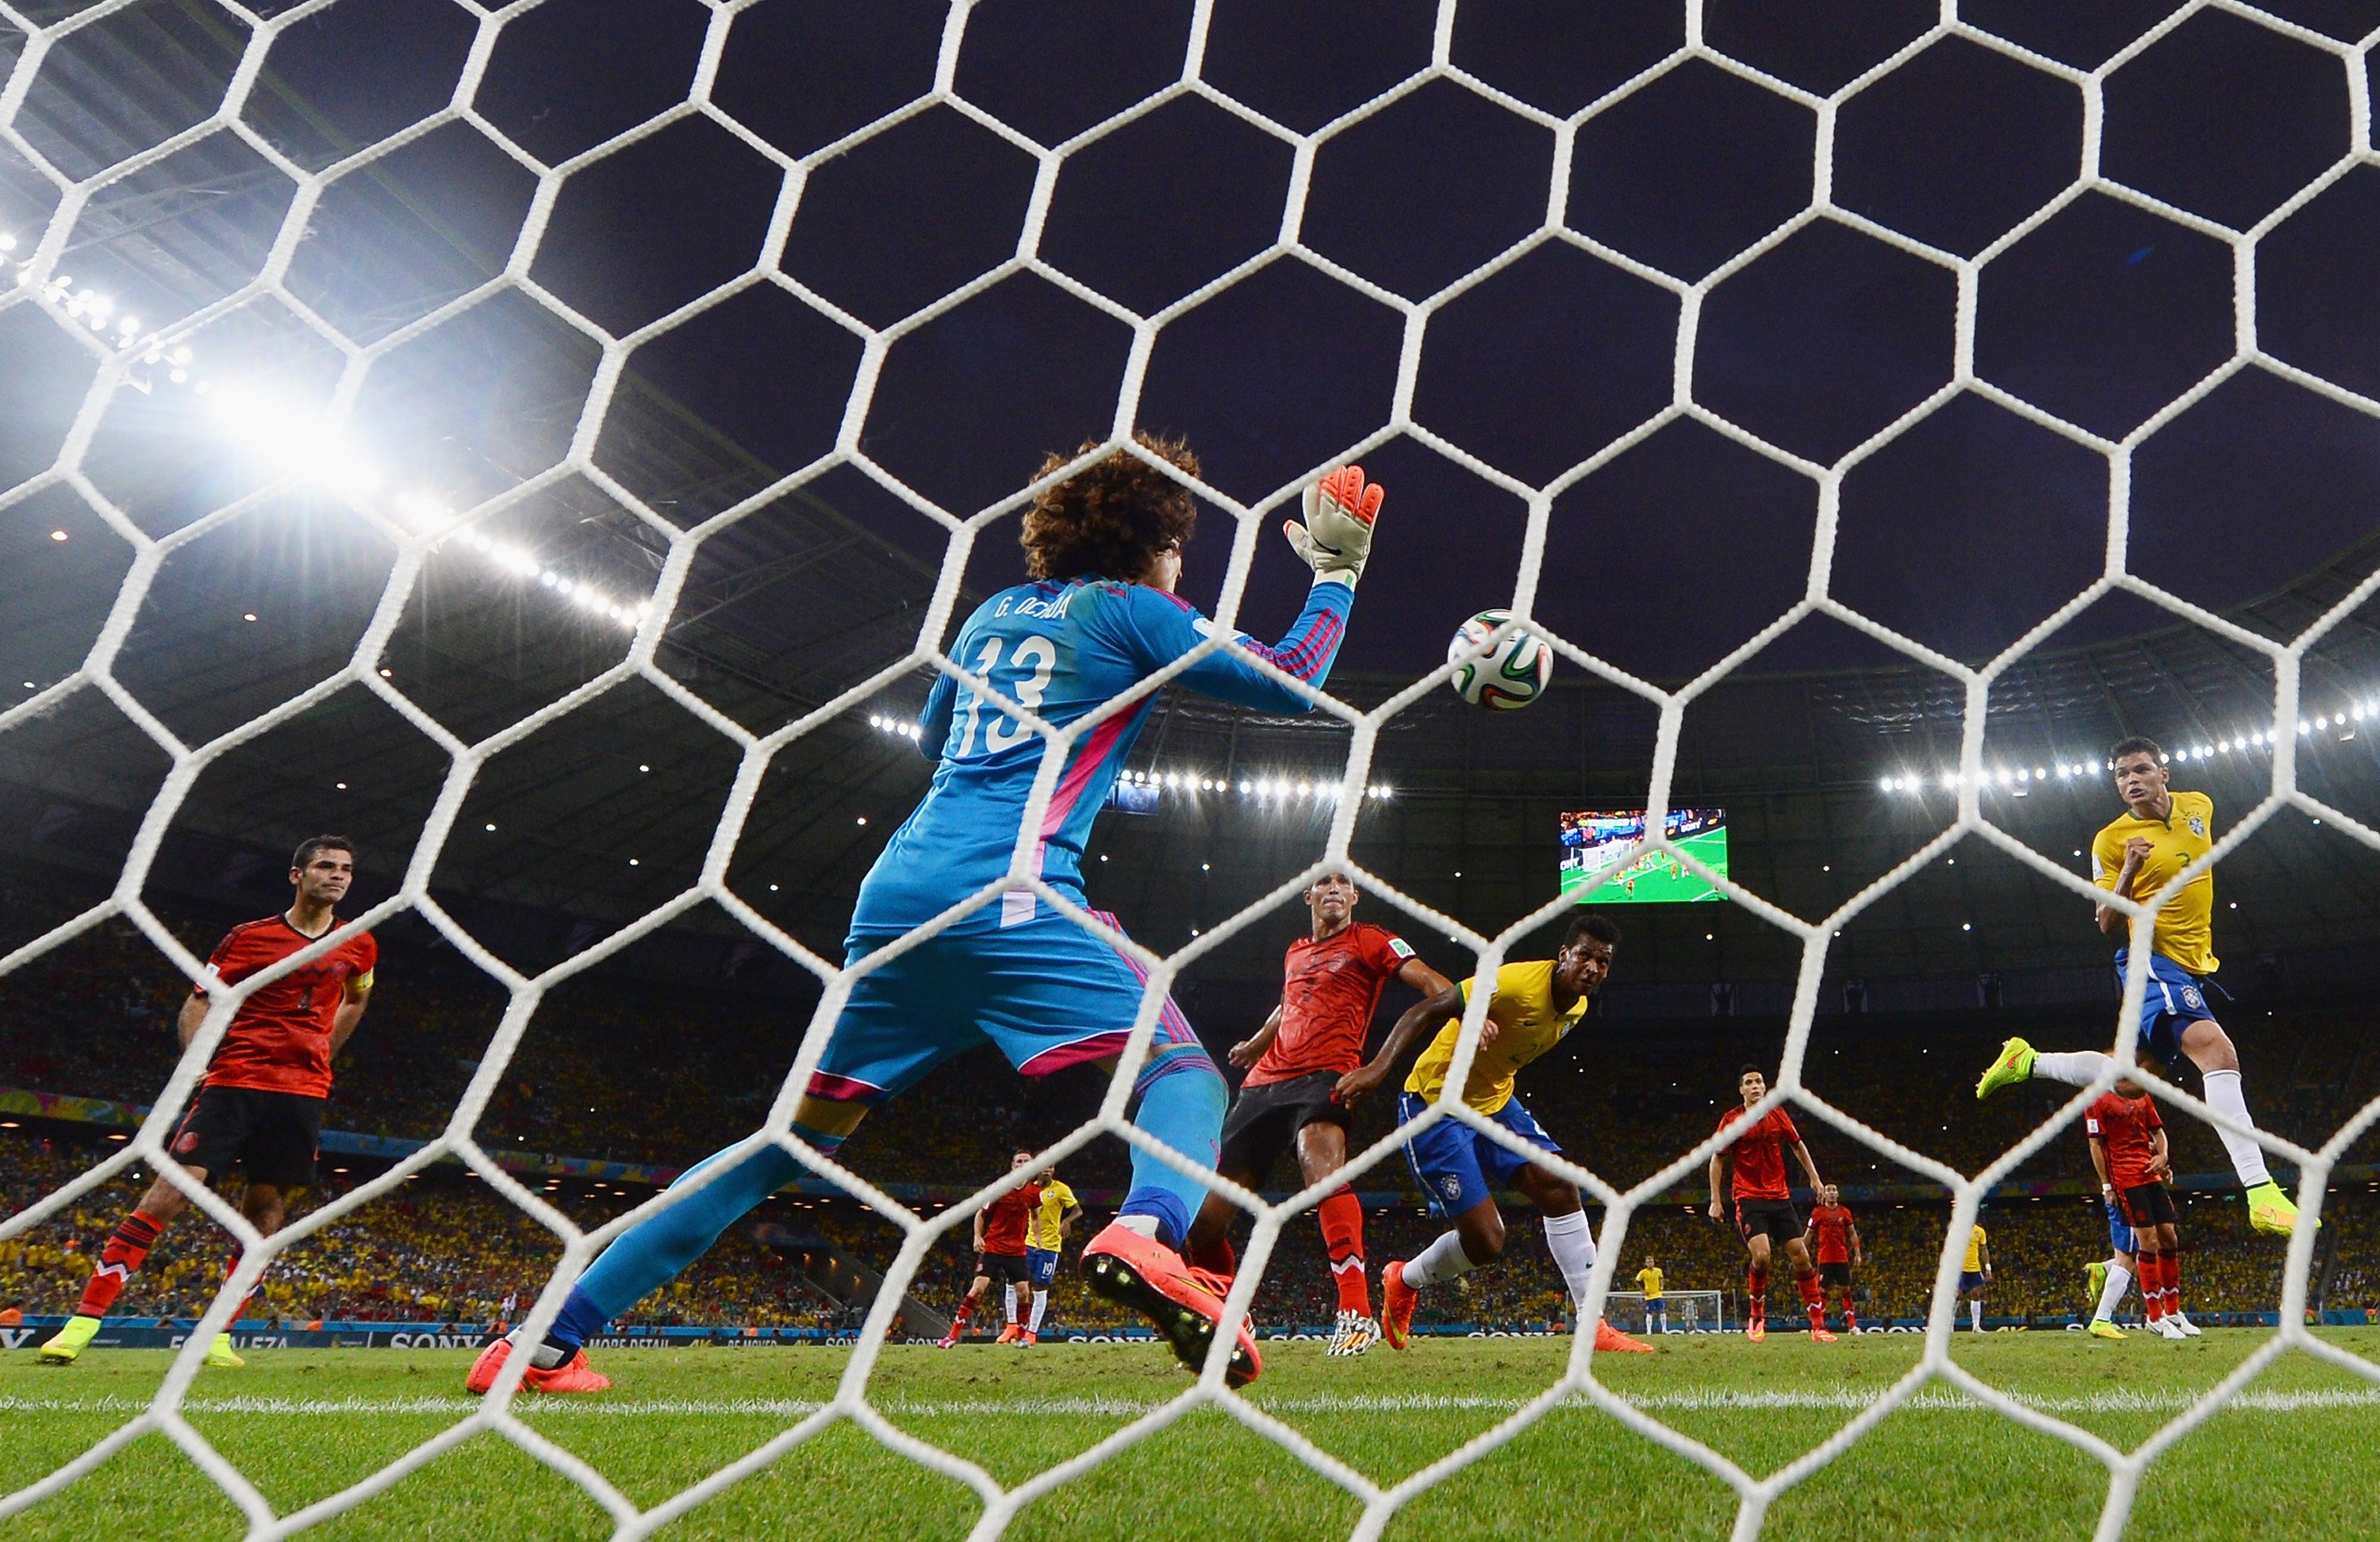 Guillermo Ochoa of Mexico makes a save after a header by Thiago Silva of Brazil during the 2014 FIFA World Cup Brazil Group A match between Brazil and Mexico at Castelao on June 17, 2014 in Fortaleza, Brazil.